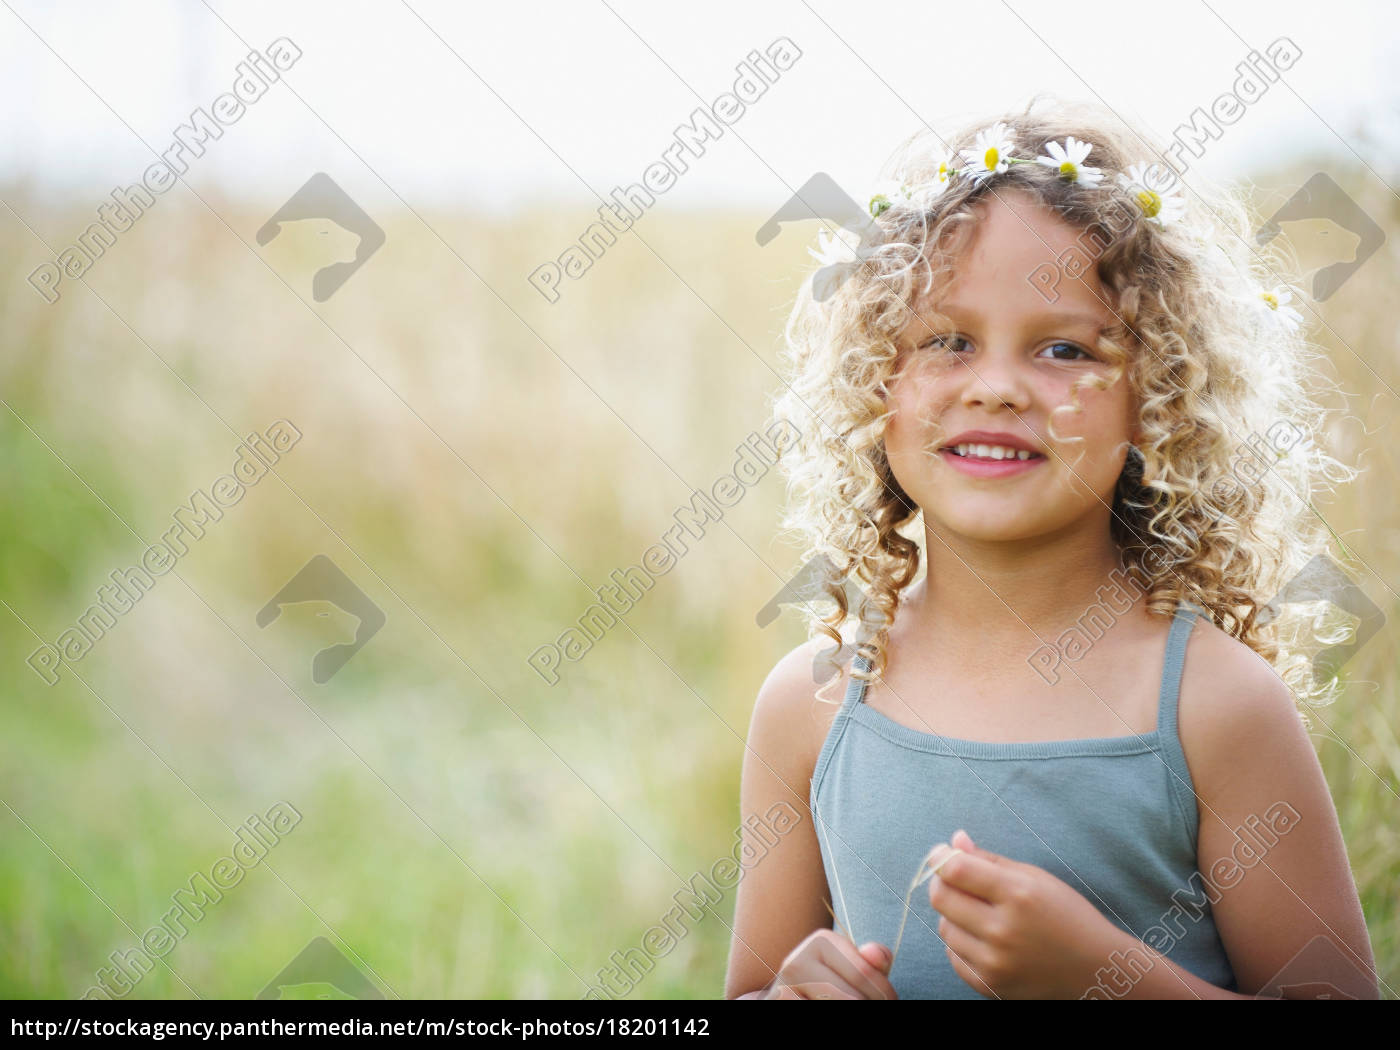 young, girl, with, daisies, in, hair - 18201142